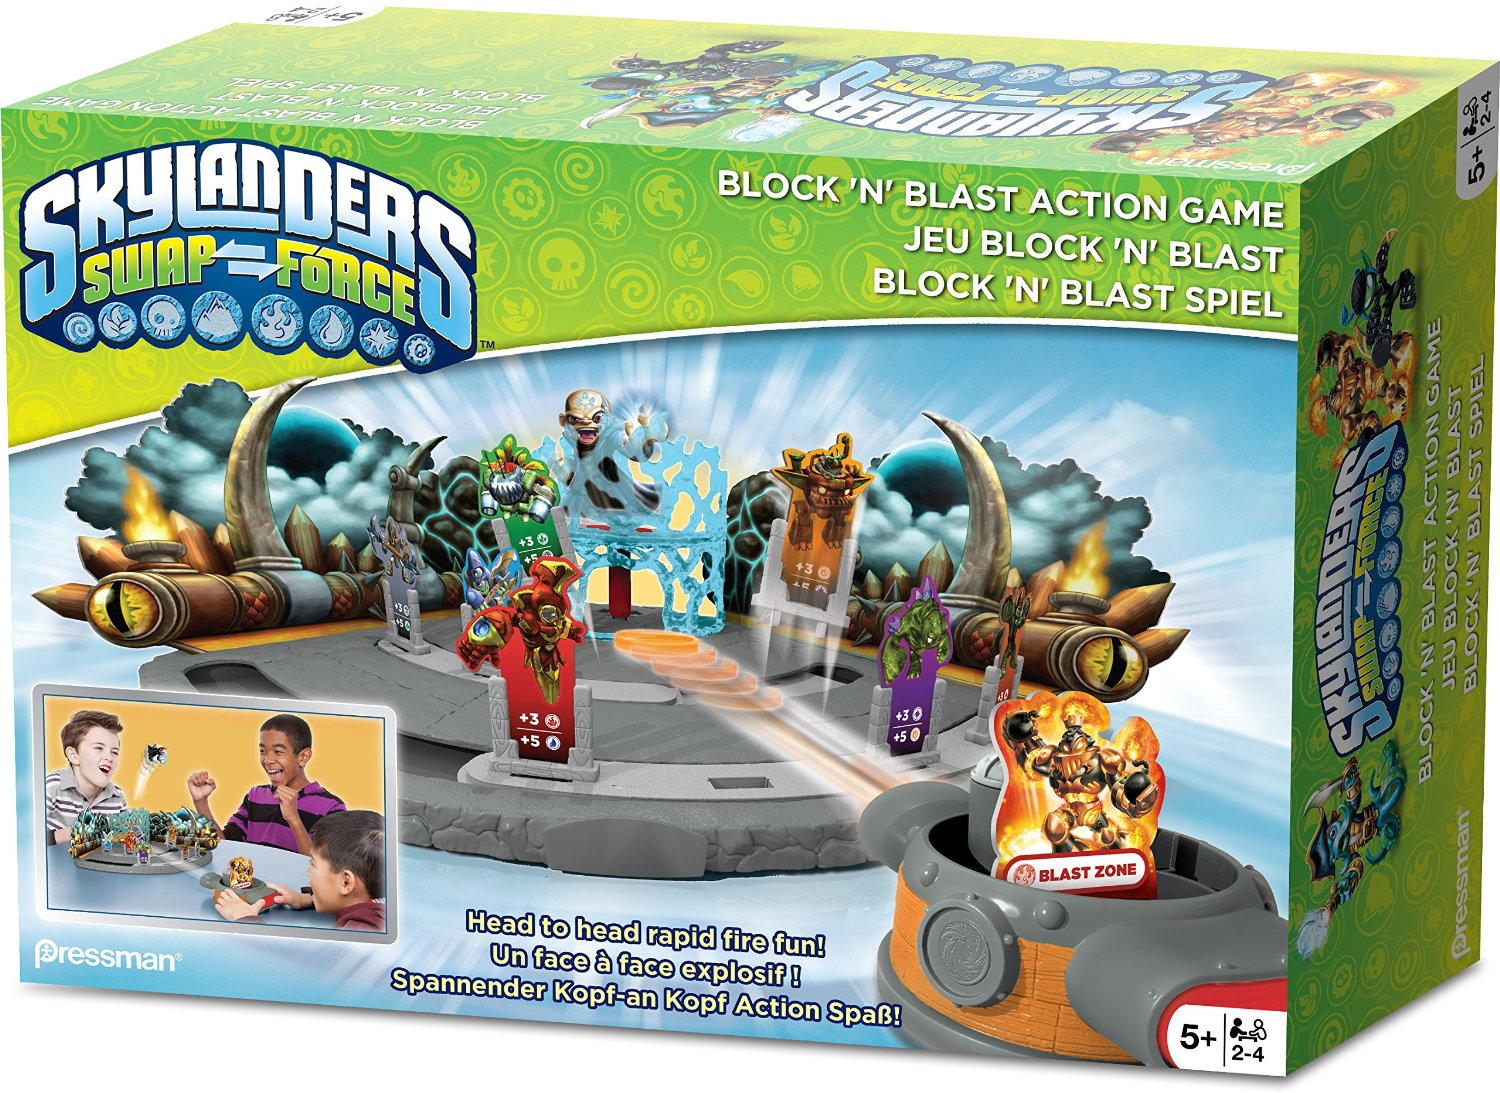 Skylanders Block and Blast Action Game only $7.19 from Amazon! (reg $30)